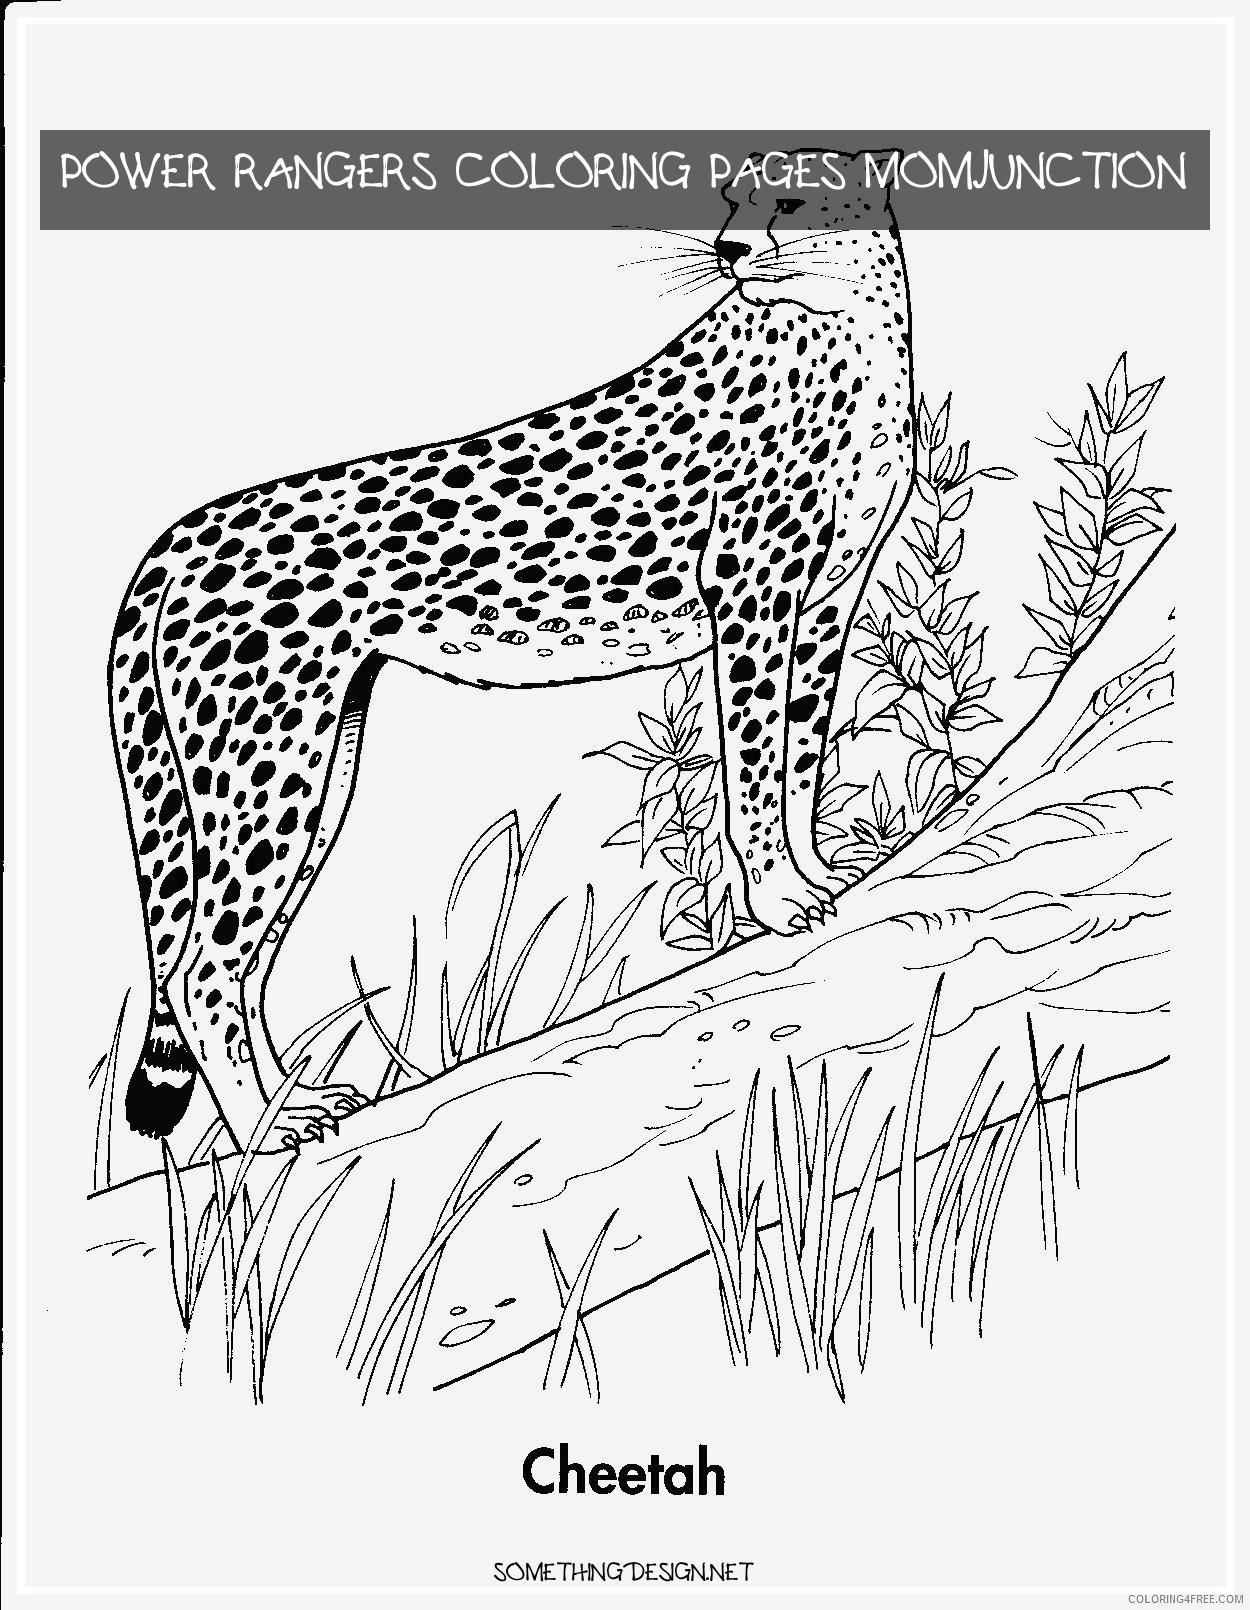 14 Power Rangers Coloring Pages Momjunction Power Rangers Coloring Pages Animal Coloring Pages Zoo Animal Coloring Pages